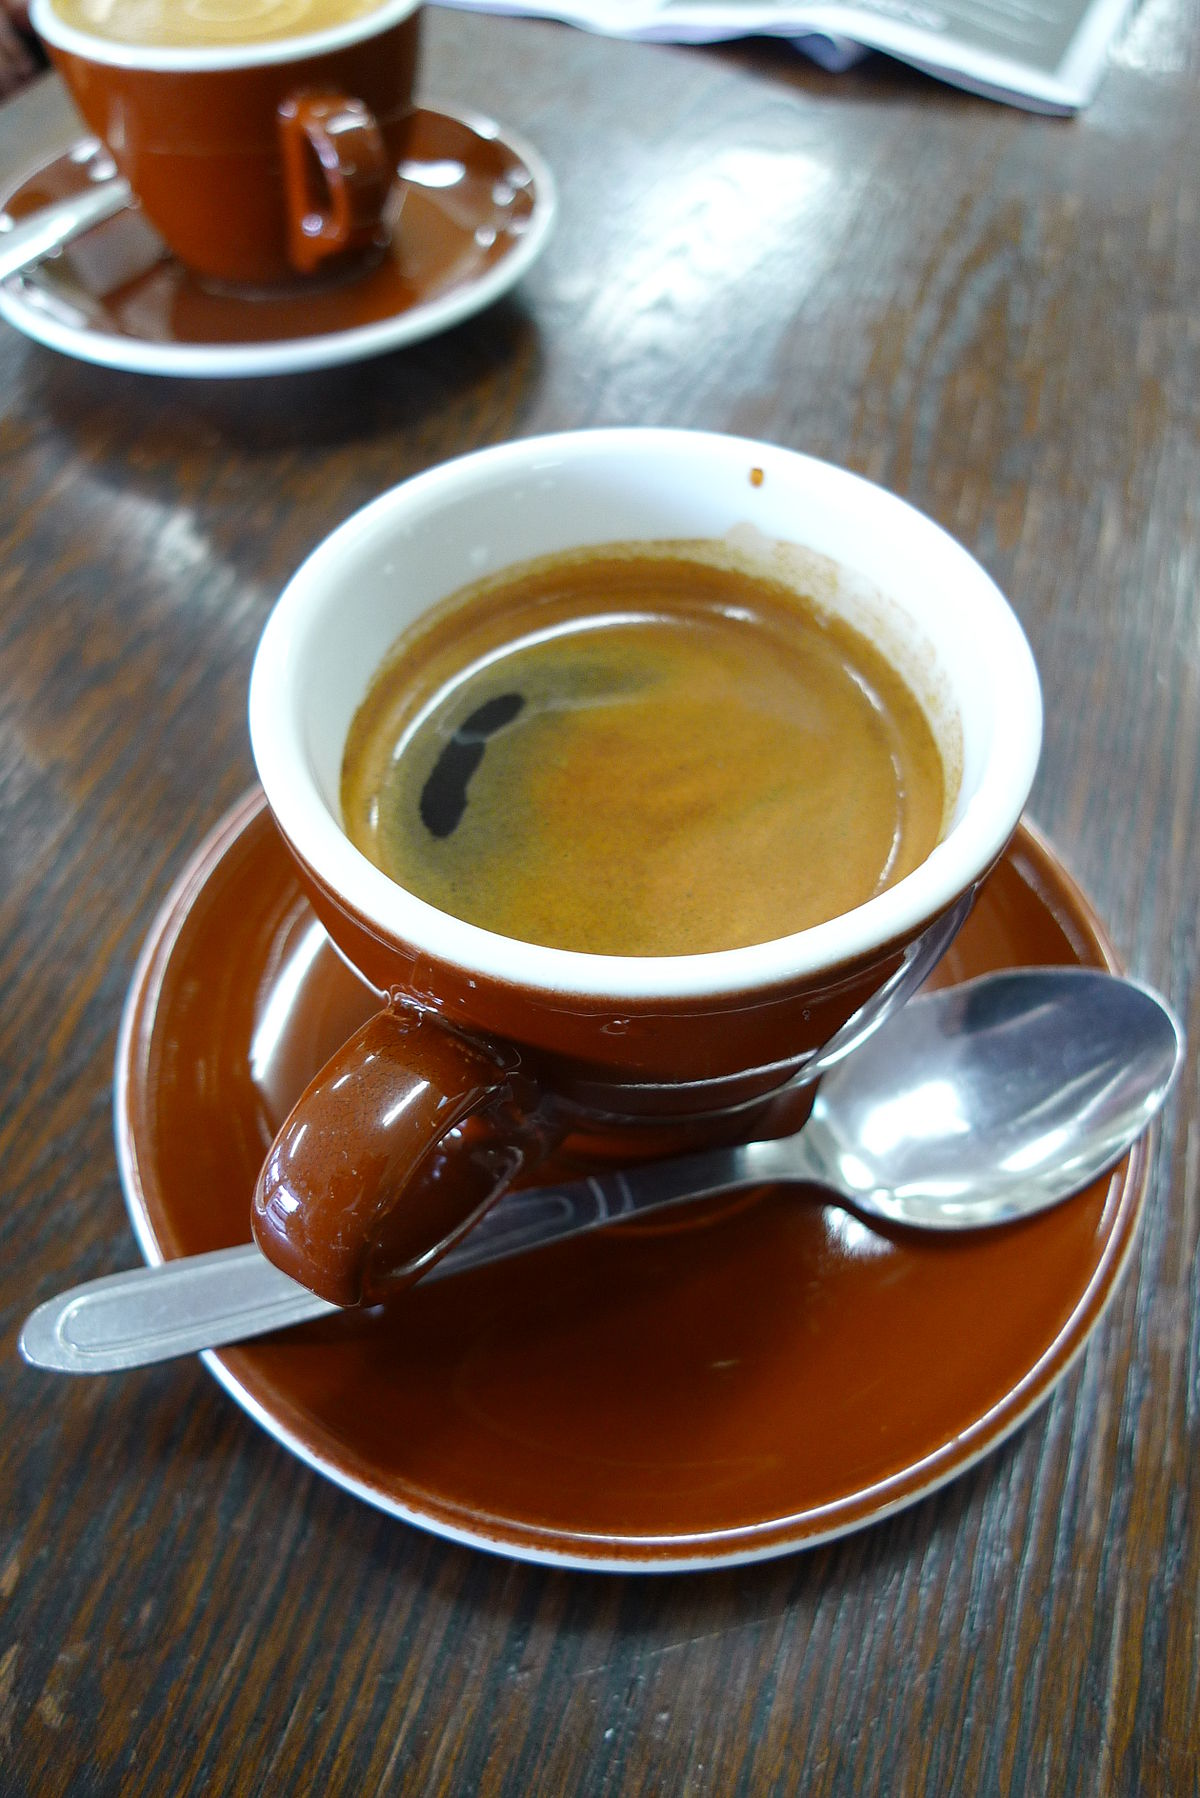 Brewed Coffee Is Often Too Hot To Drink Right Away